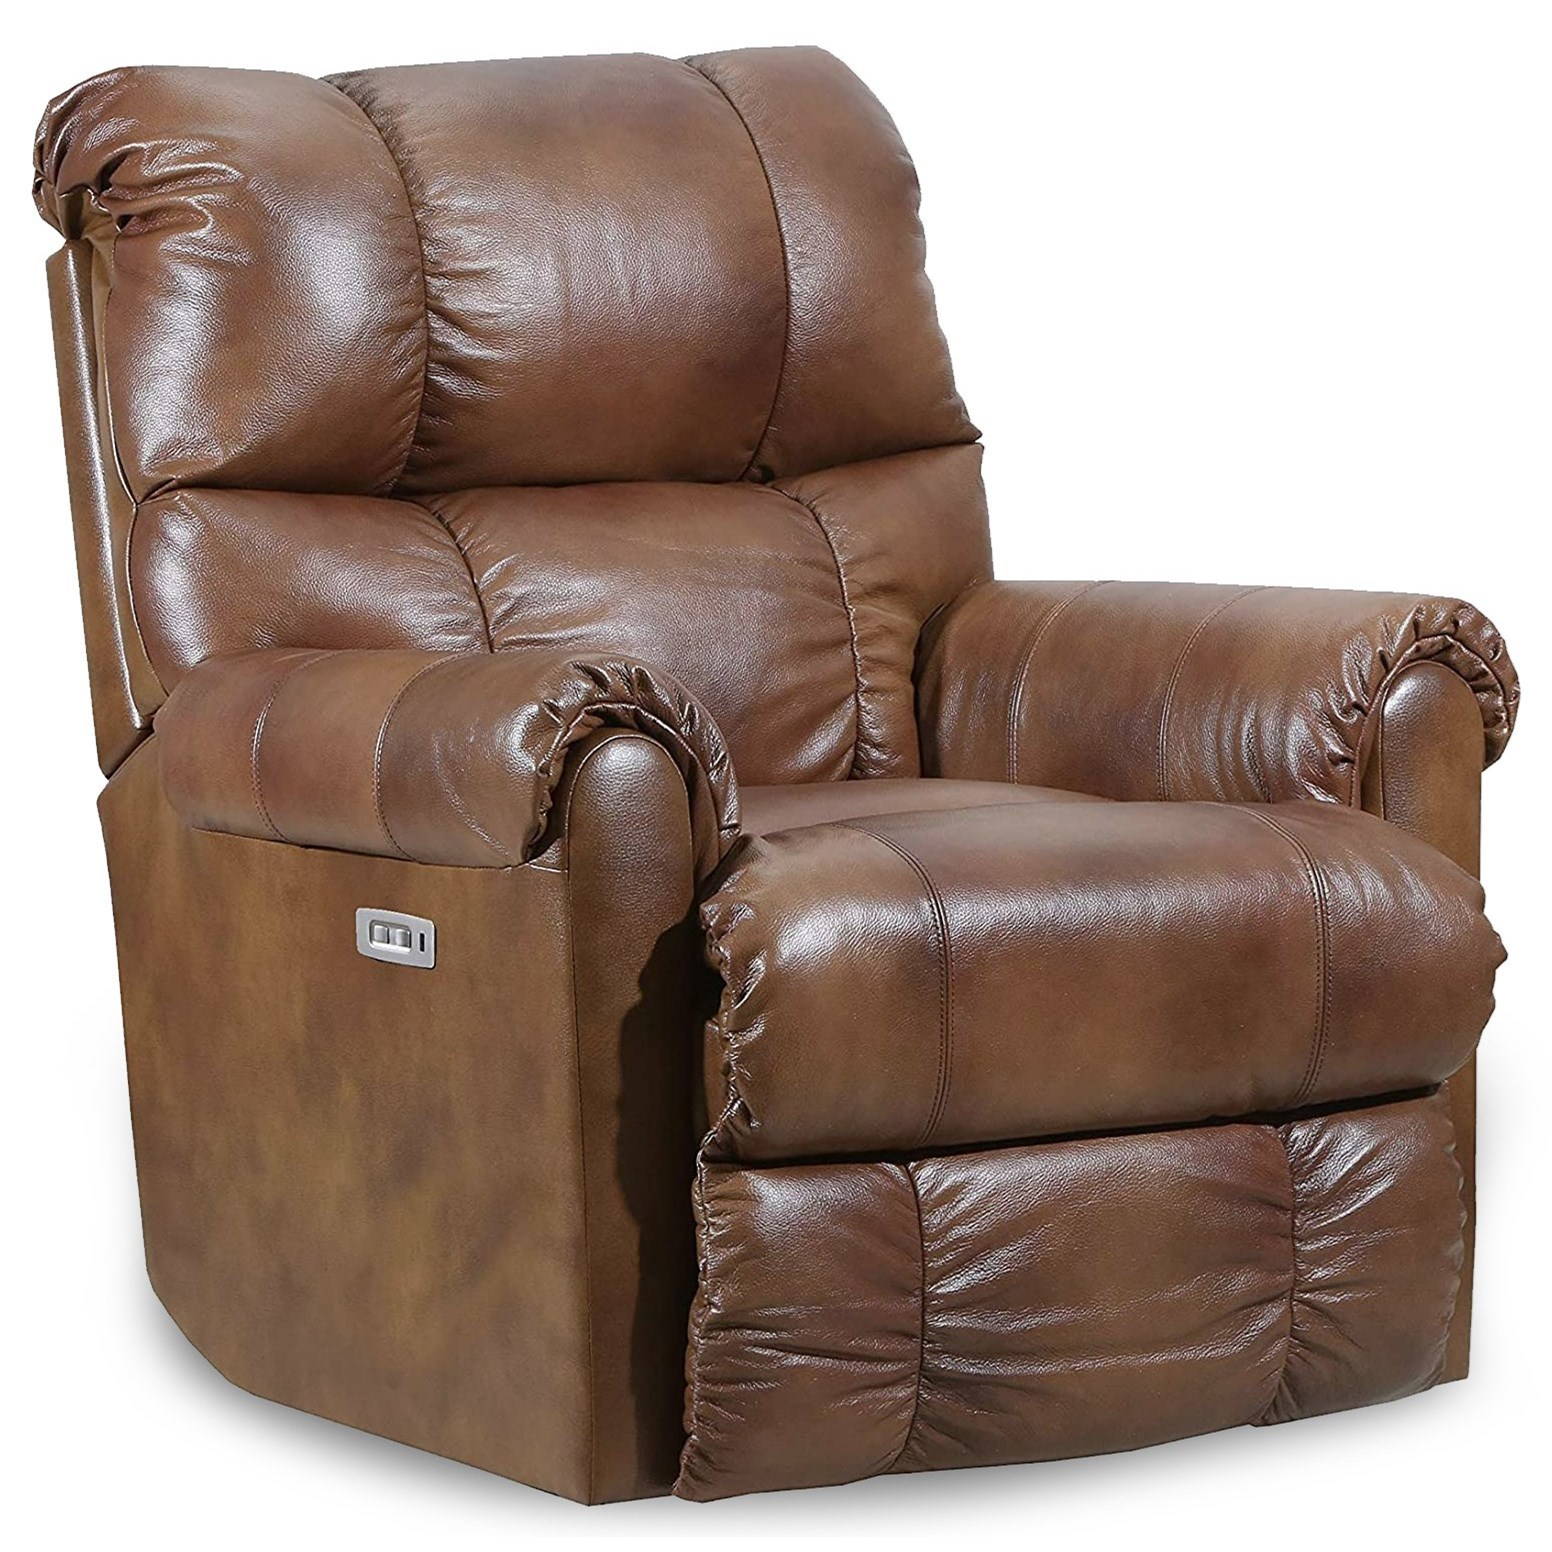 Avenger Power Glider Recliner with Heat and Massage by Lane at Powell's Furniture and Mattress